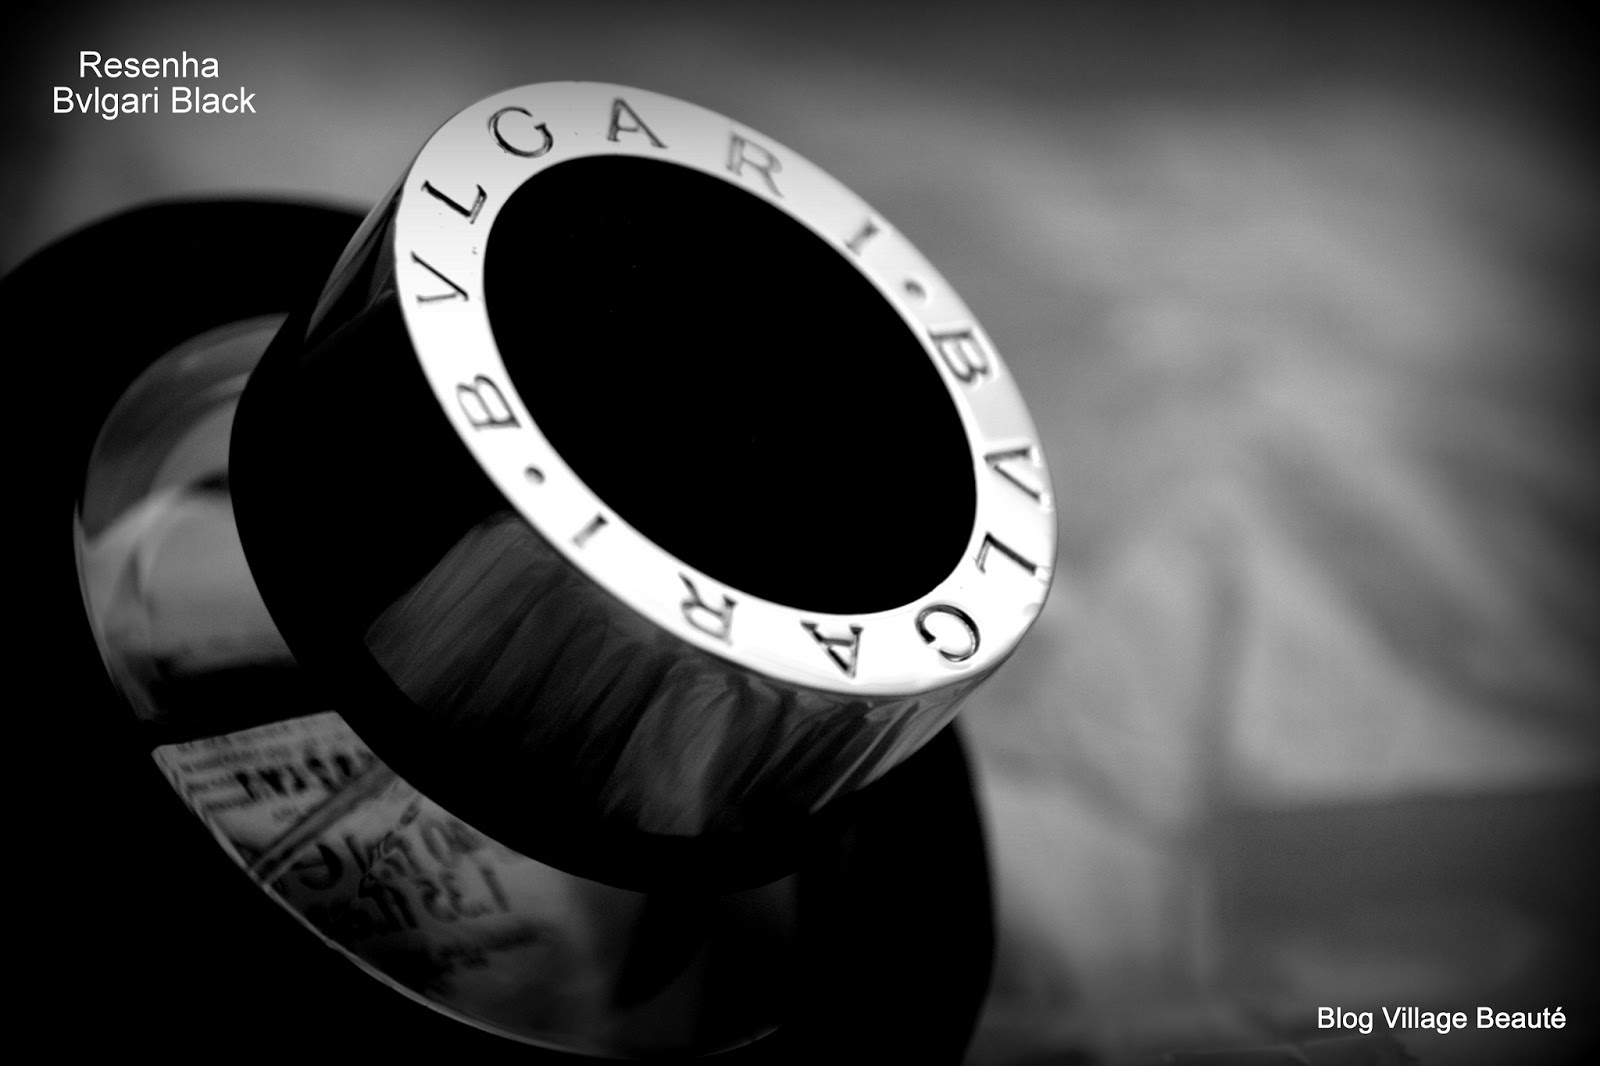 DETALHE FRASCO RESENHA DE PERFUME BVLGARI BLACK